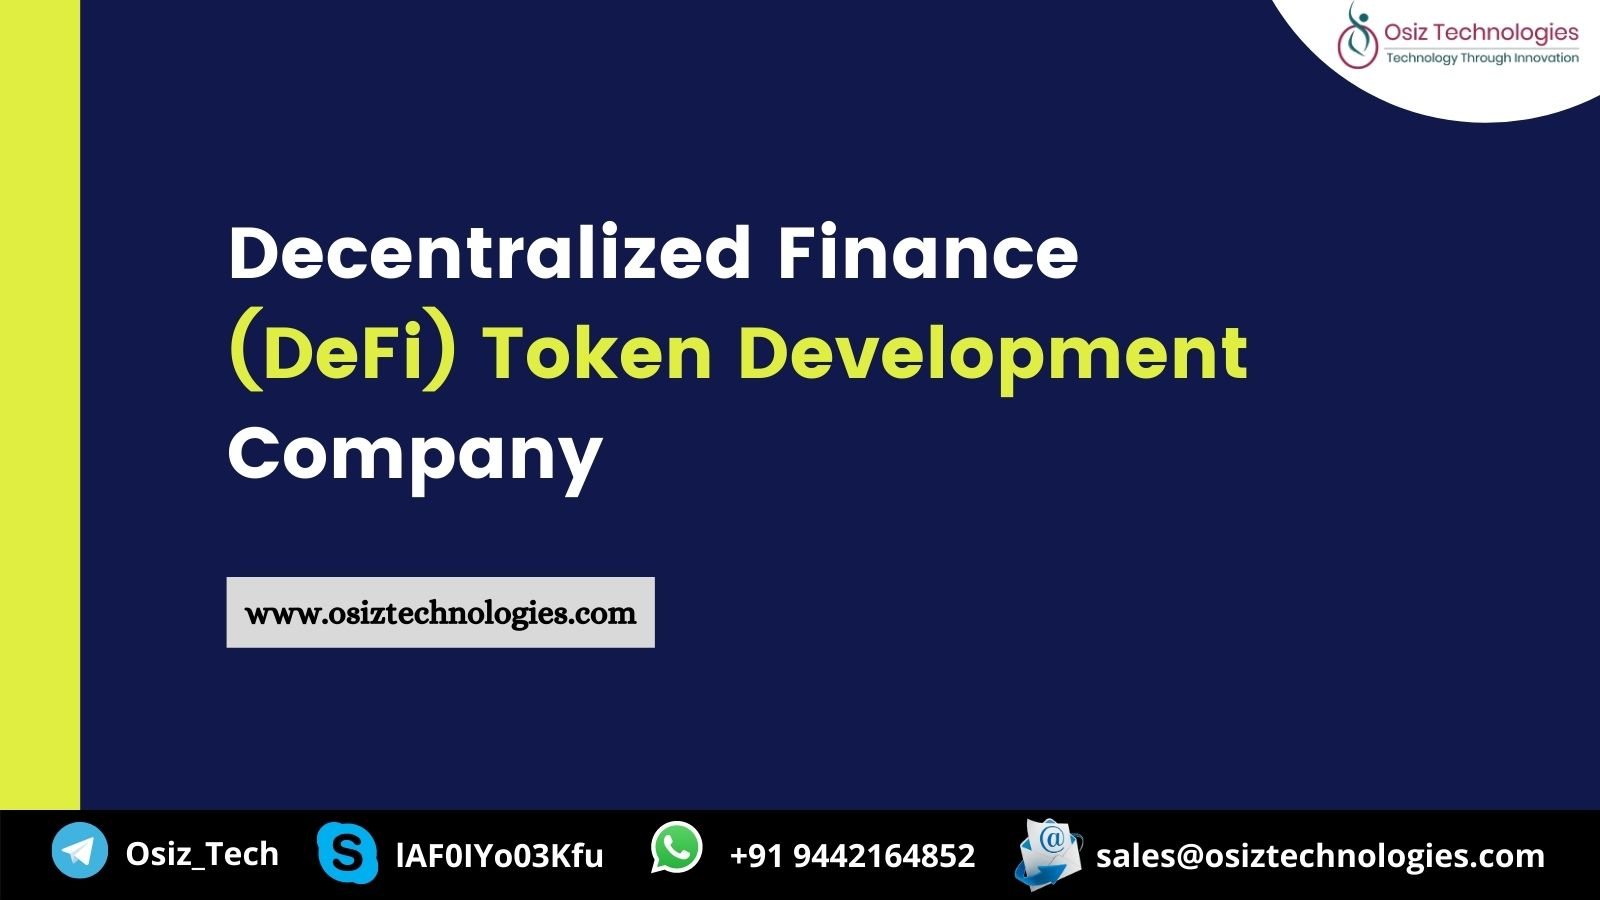 DeFi Token Development Company - What are DeFi tokens? How can they upscale your DeFi business?